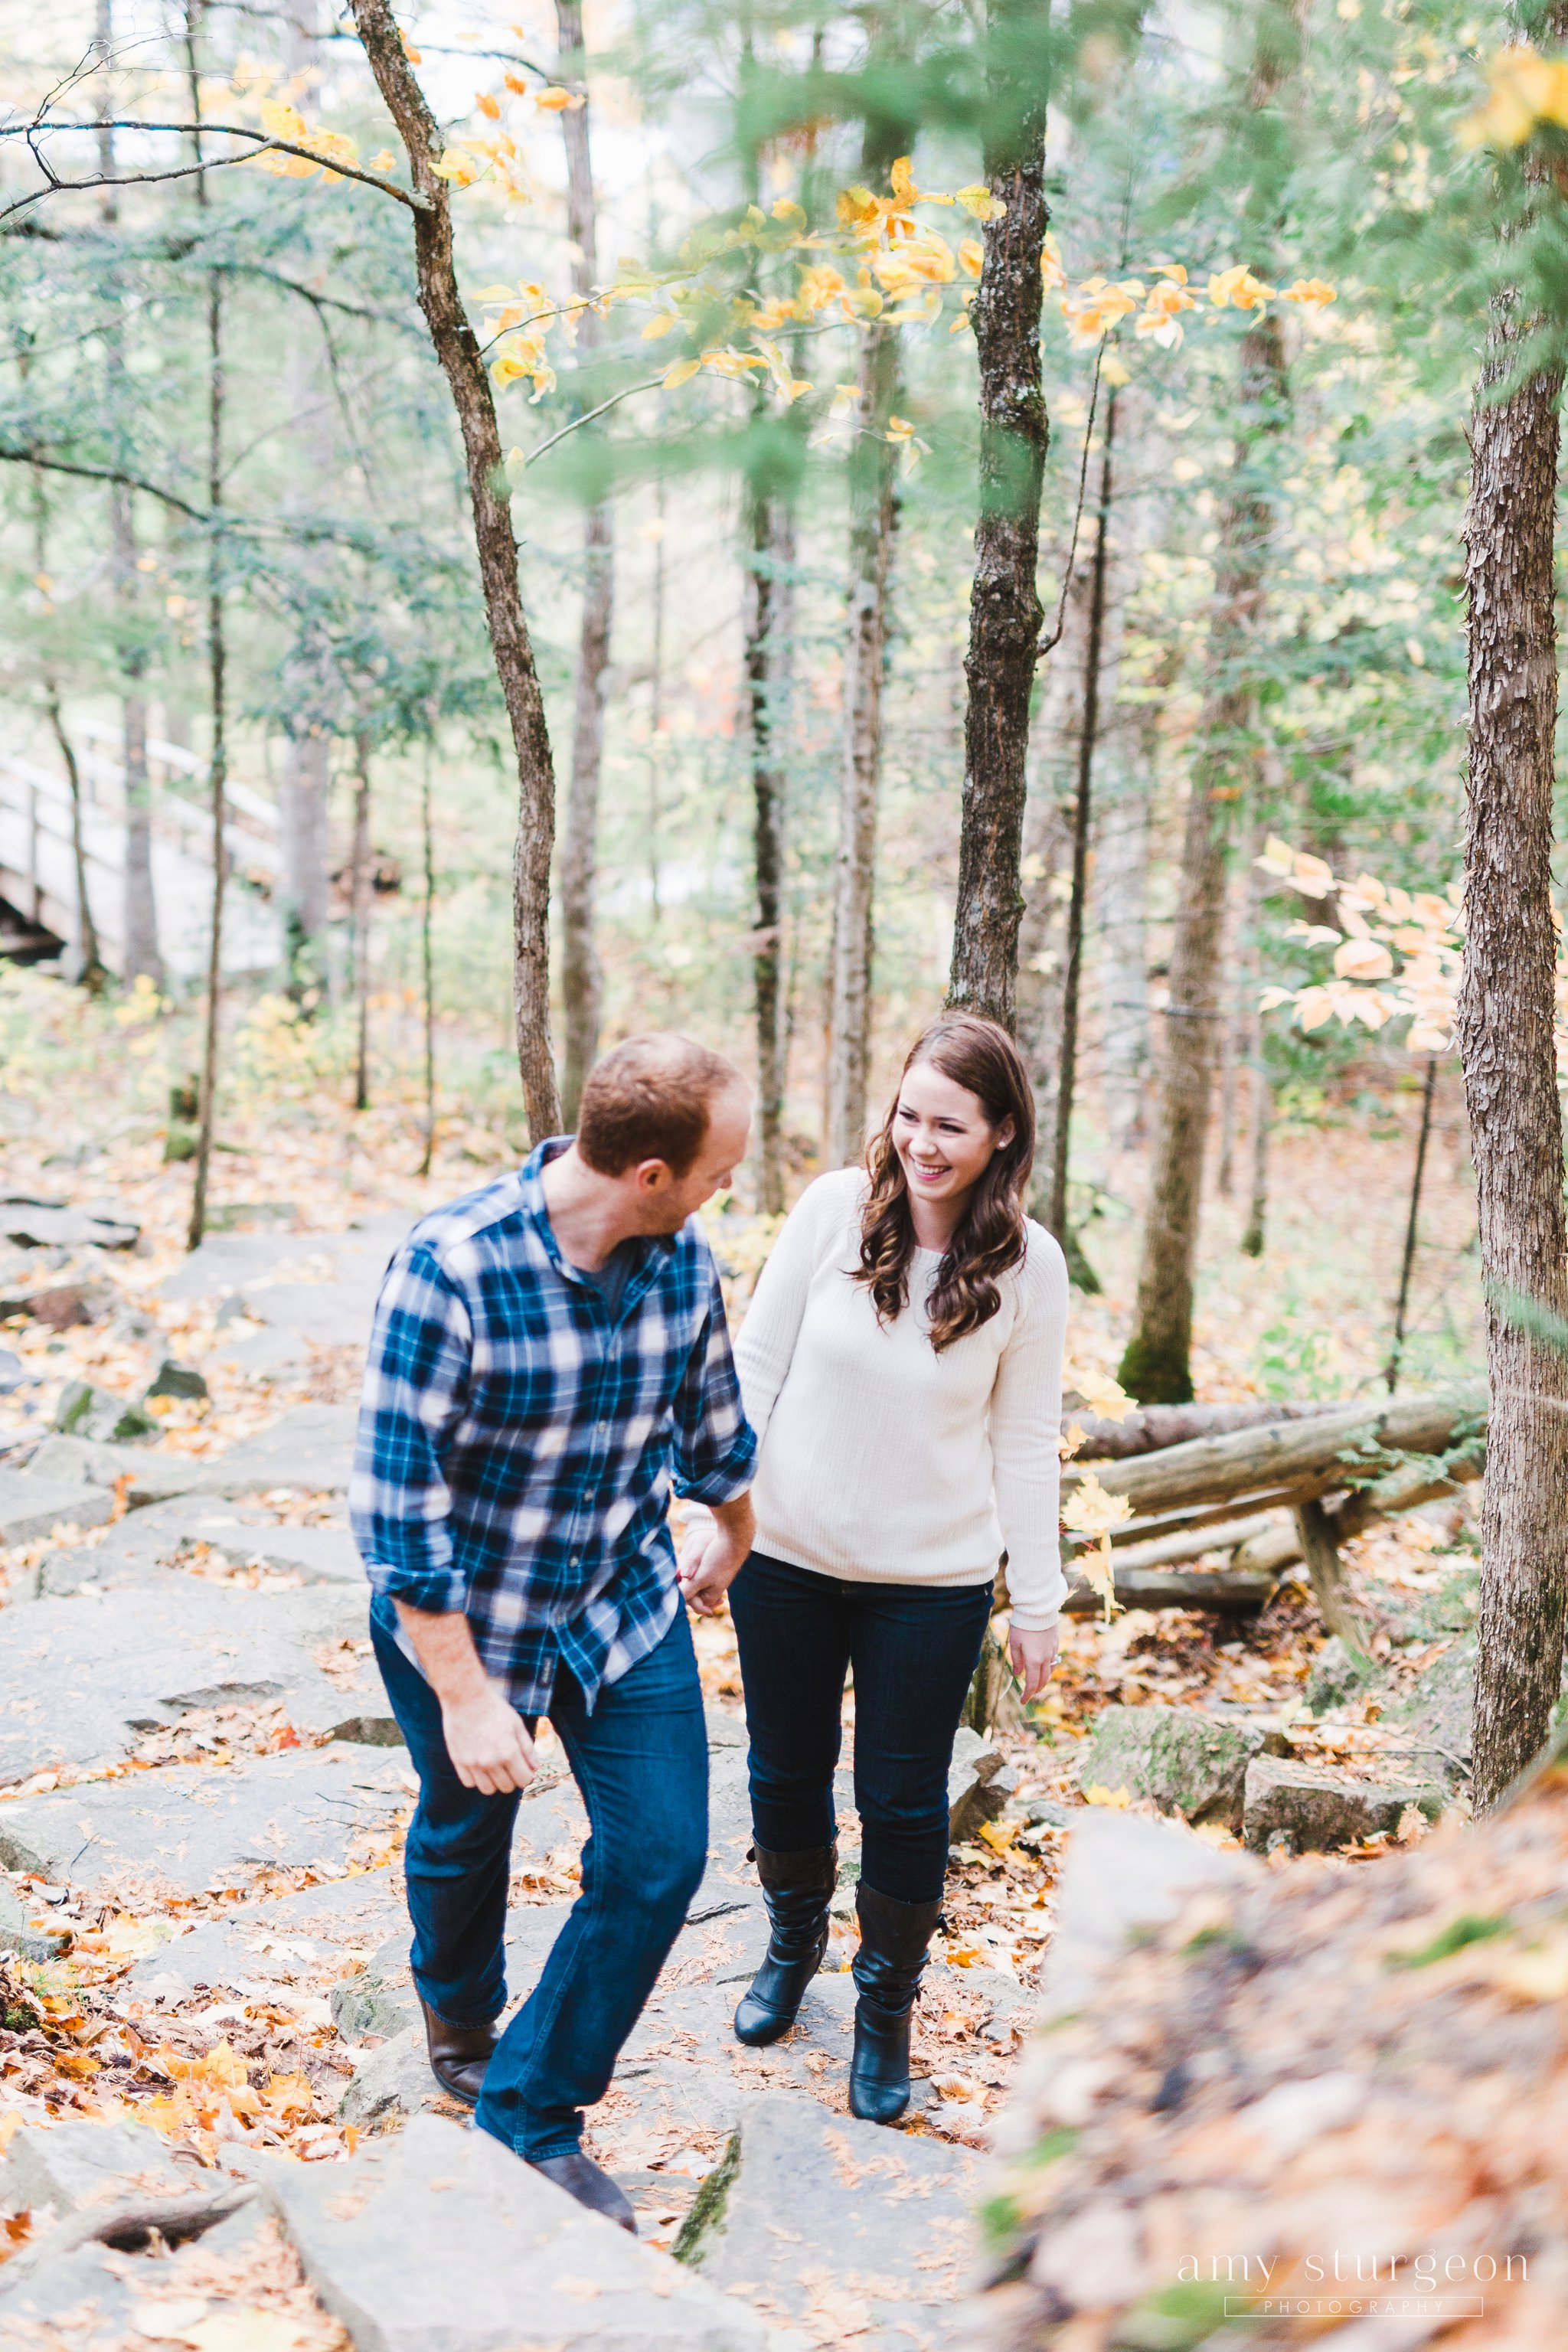 Walking up the stone path for their Fall Wakefield Engagement Session by the covered bridge